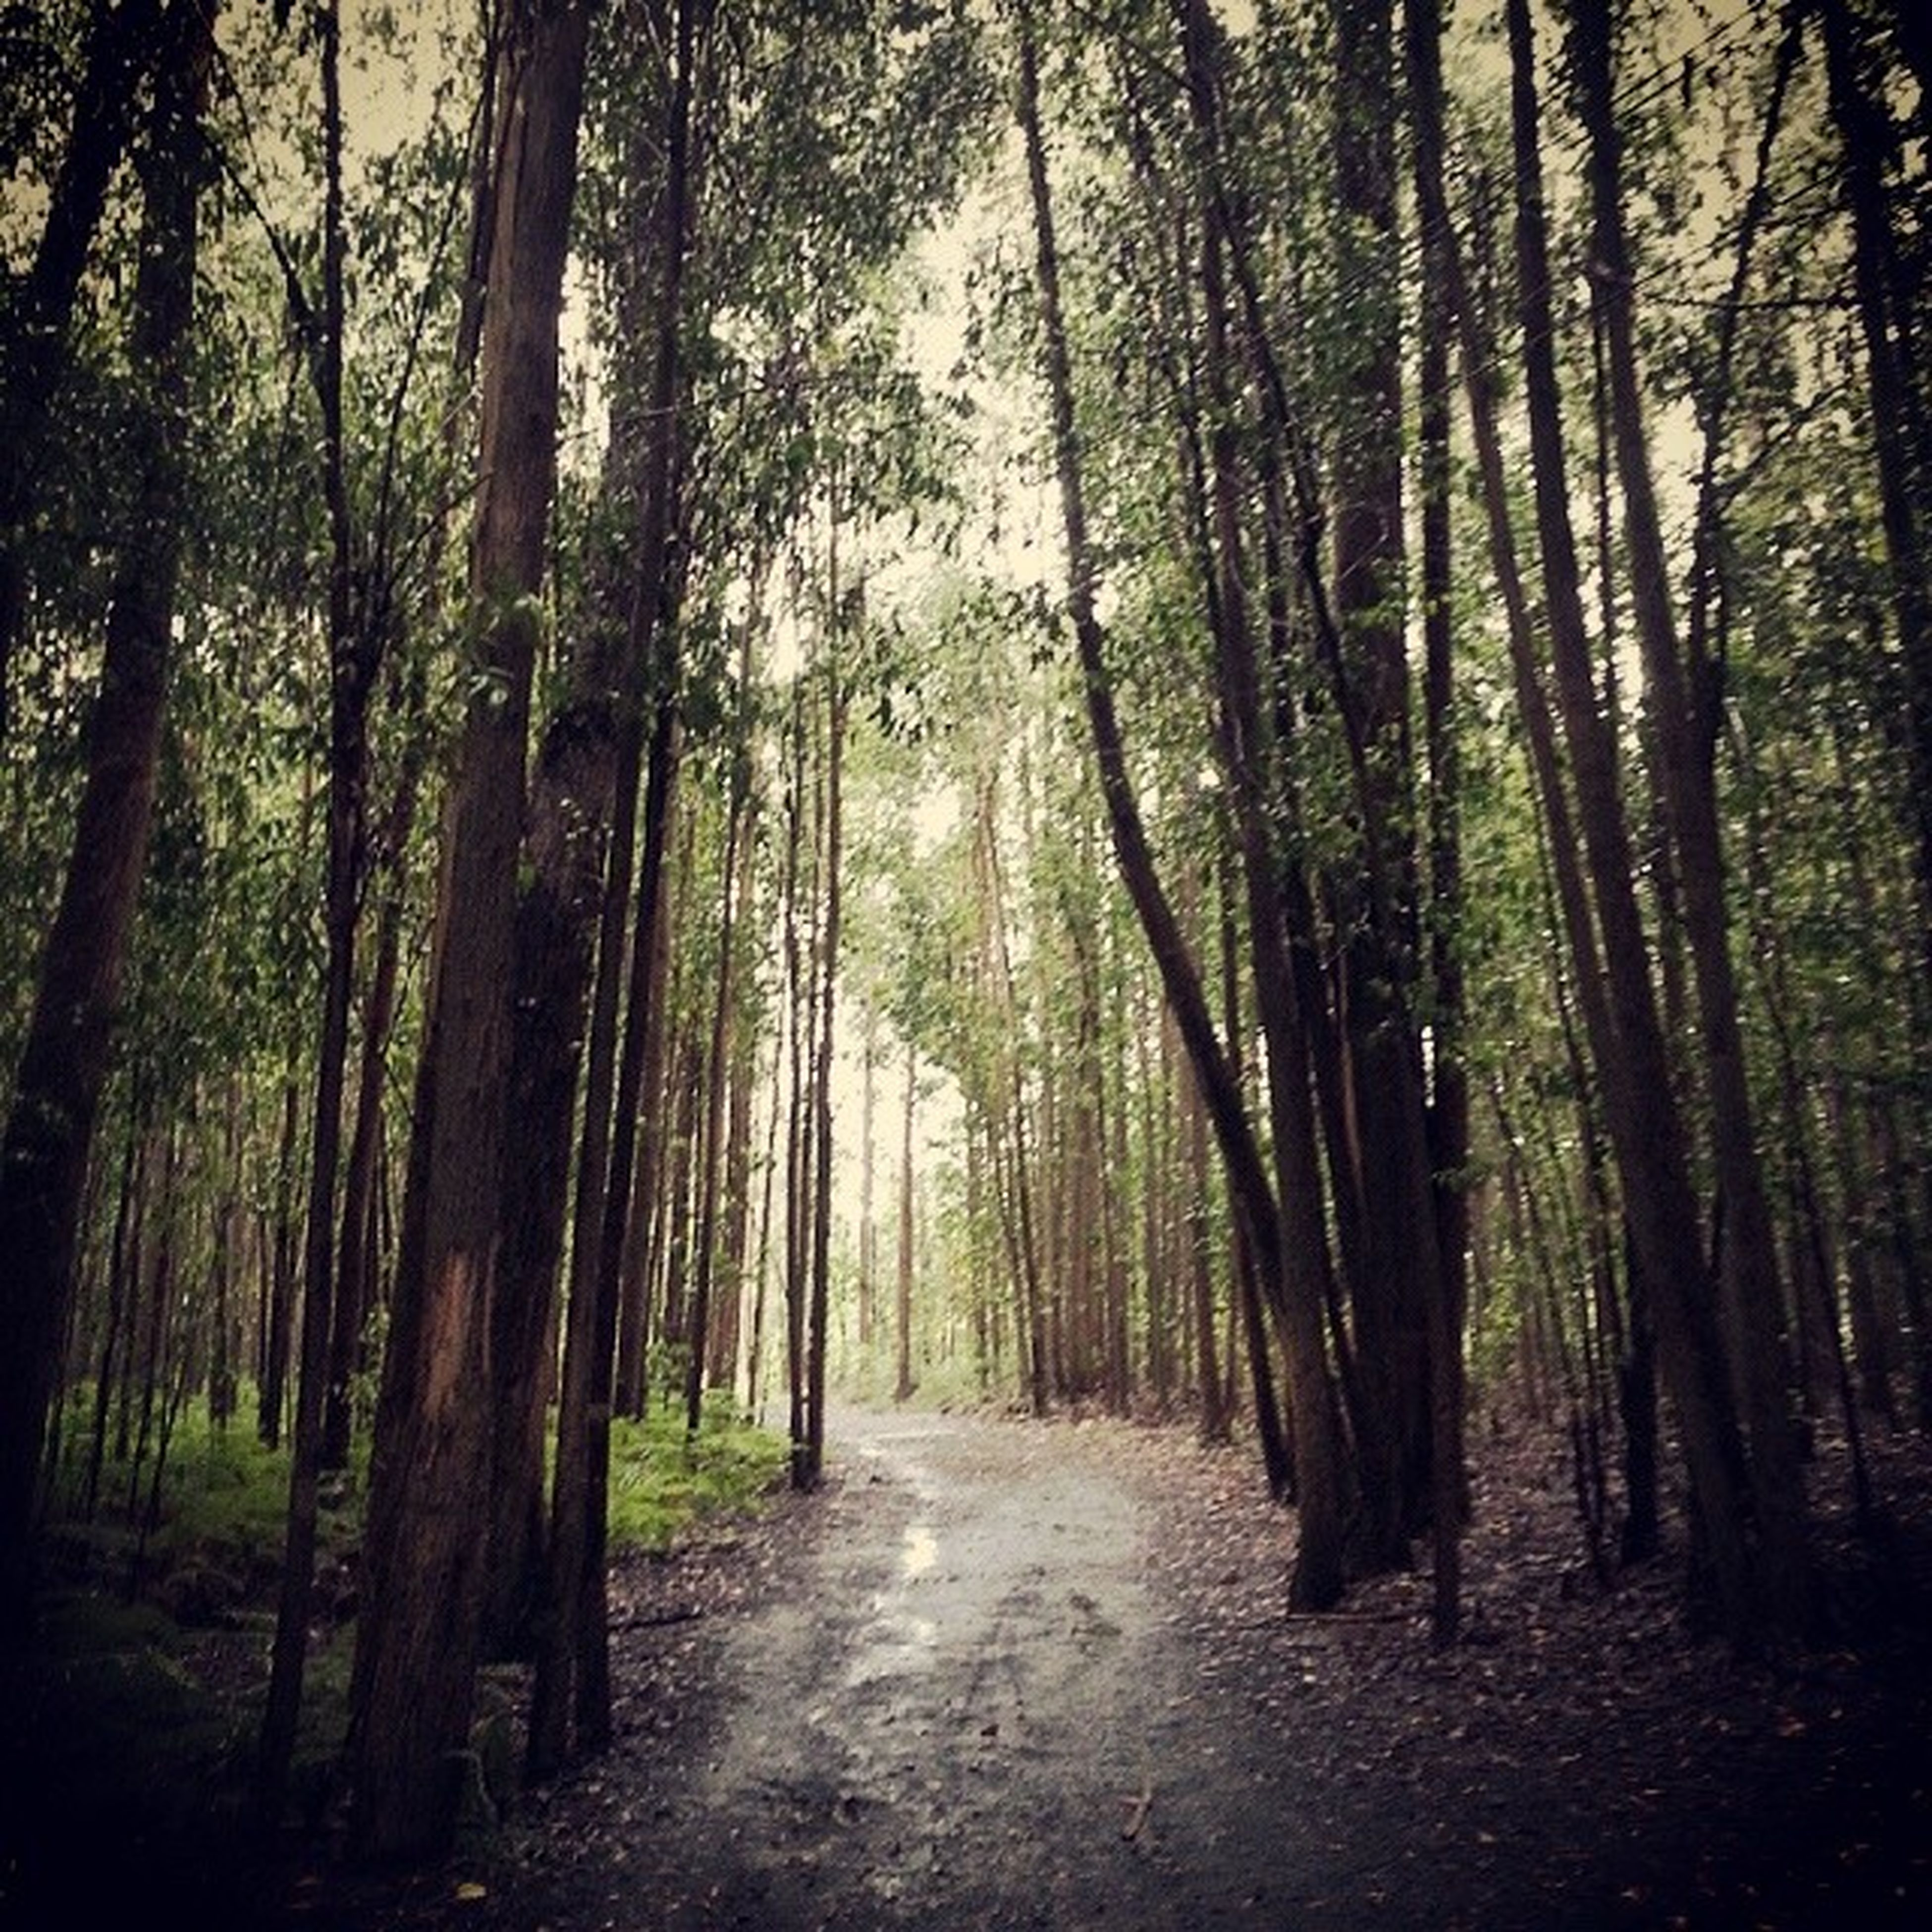 tree, the way forward, forest, tree trunk, tranquility, woodland, diminishing perspective, growth, nature, tranquil scene, vanishing point, treelined, beauty in nature, dirt road, scenics, footpath, road, non-urban scene, day, outdoors